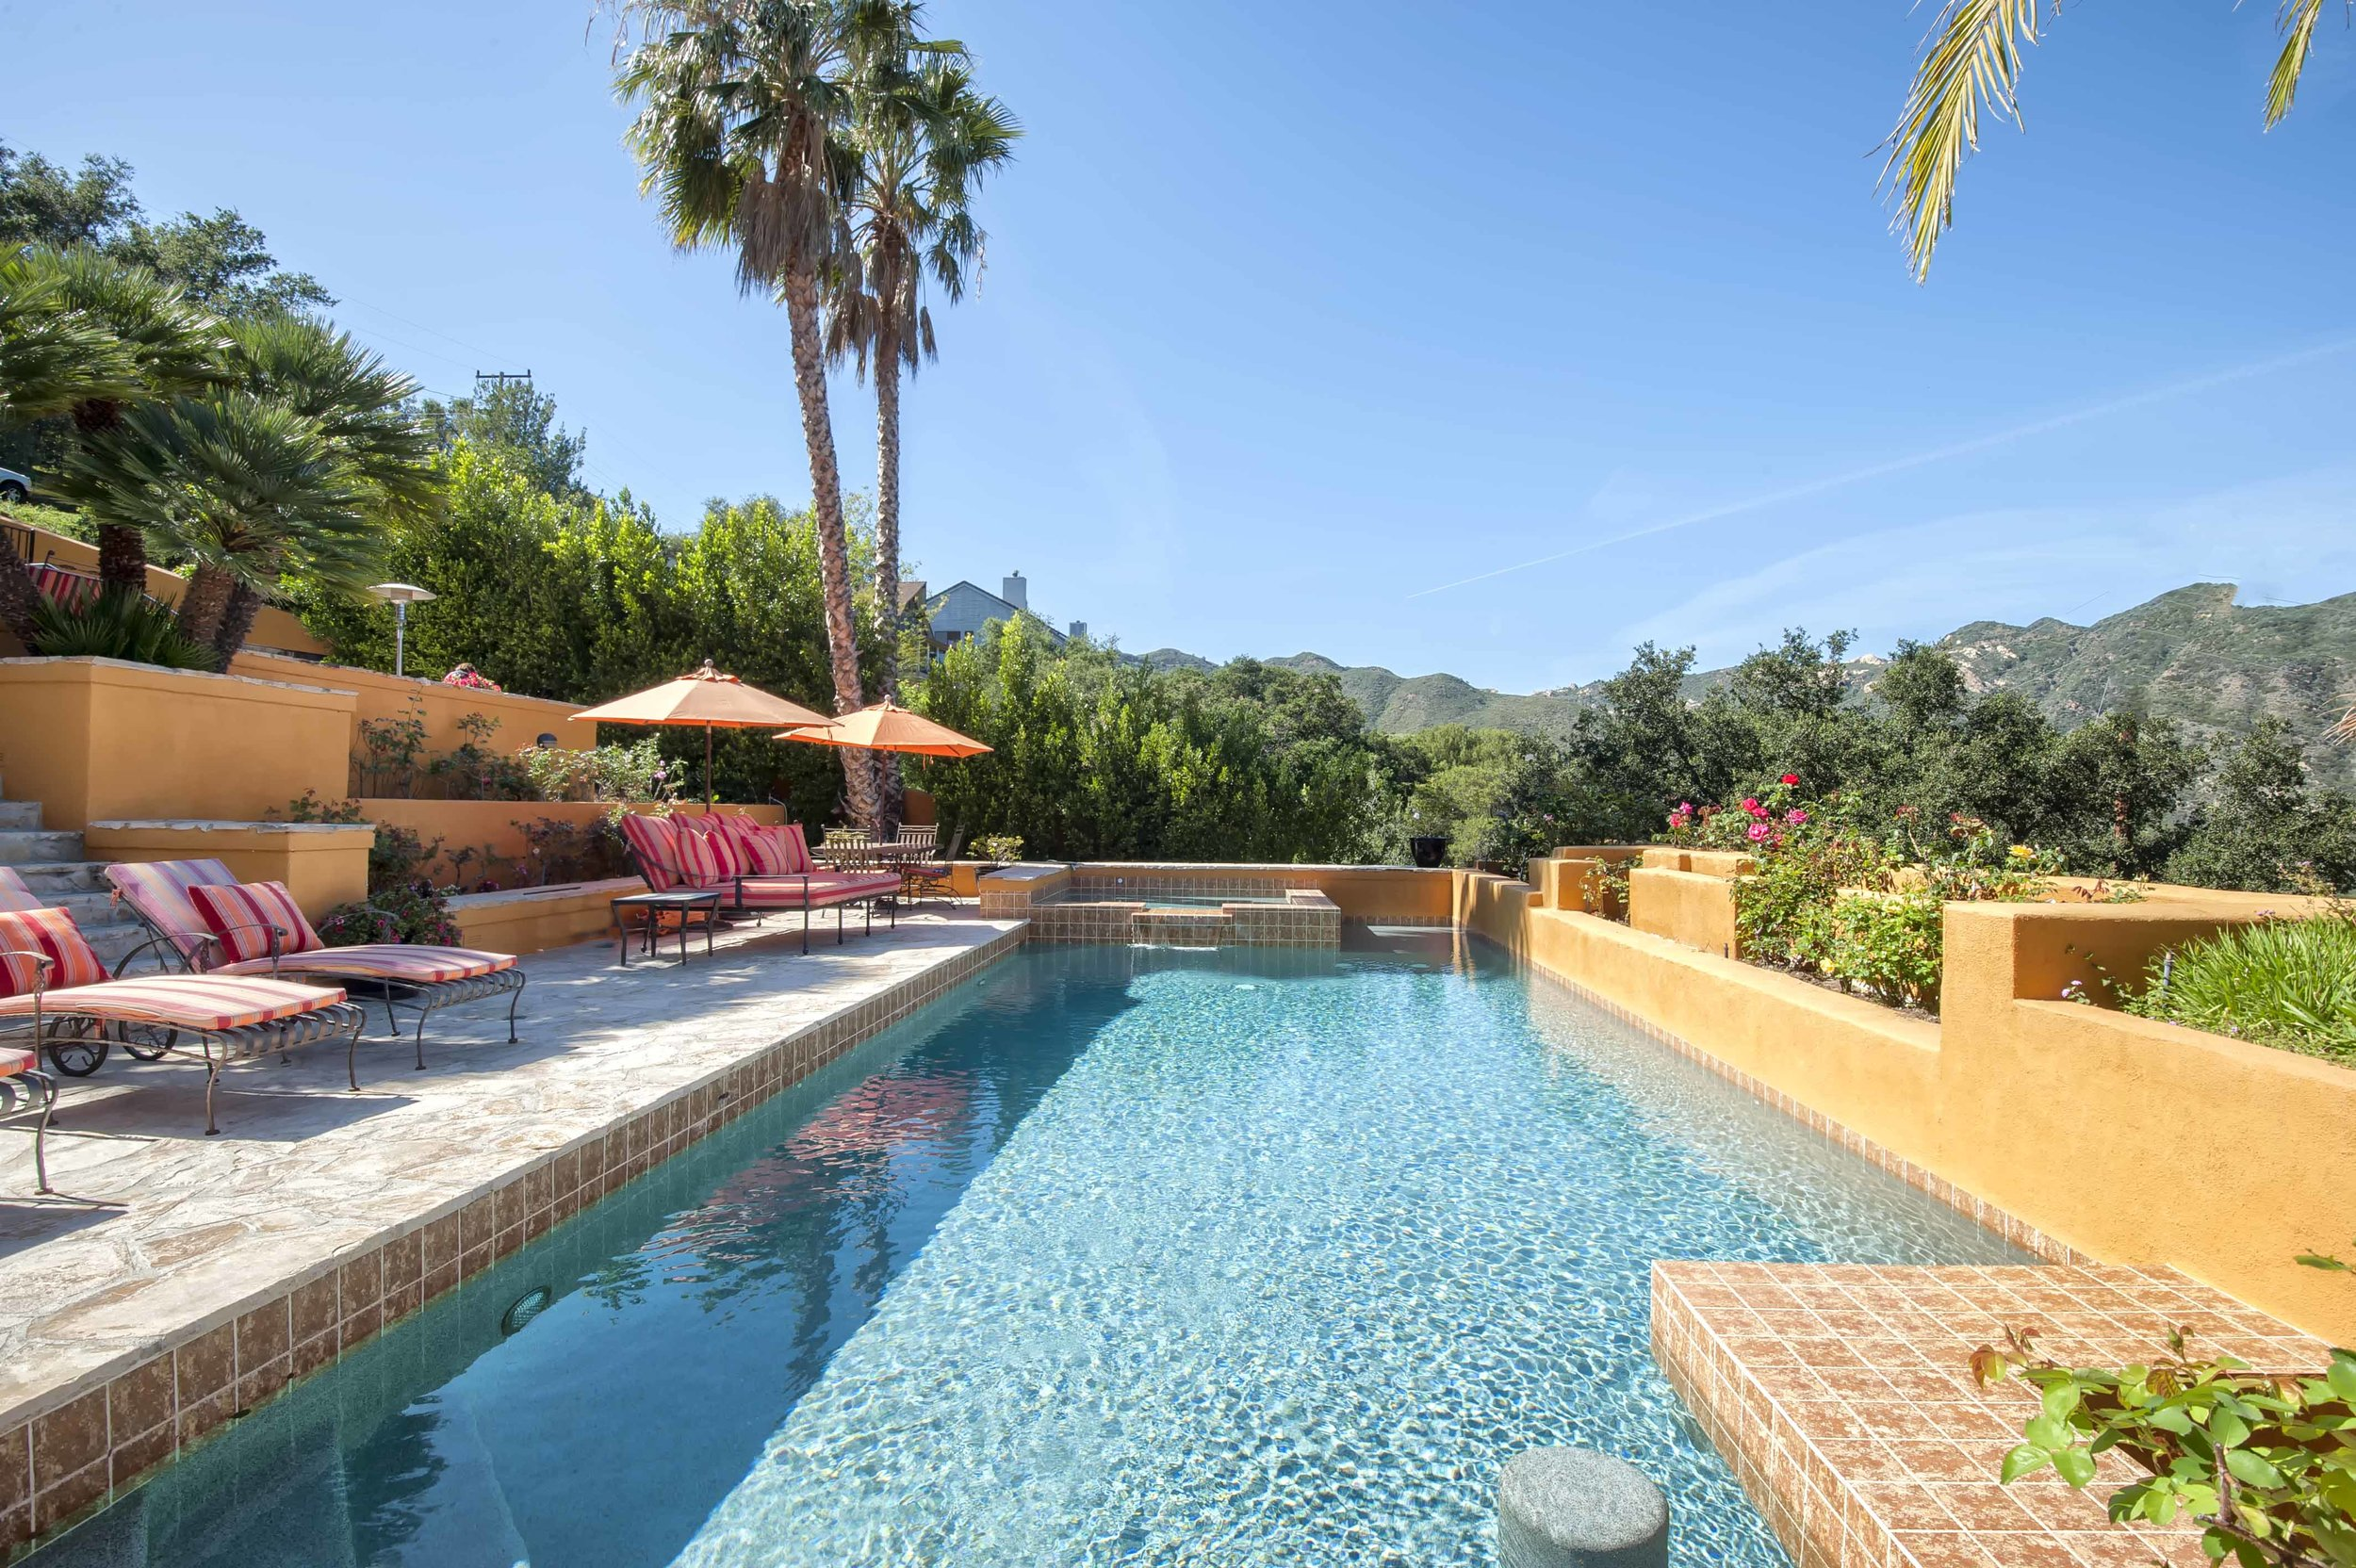 022 pool 26115 Idlewild Street Malibu For Sale Lease The Malibu Life Team Luxury Real Estate.jpg